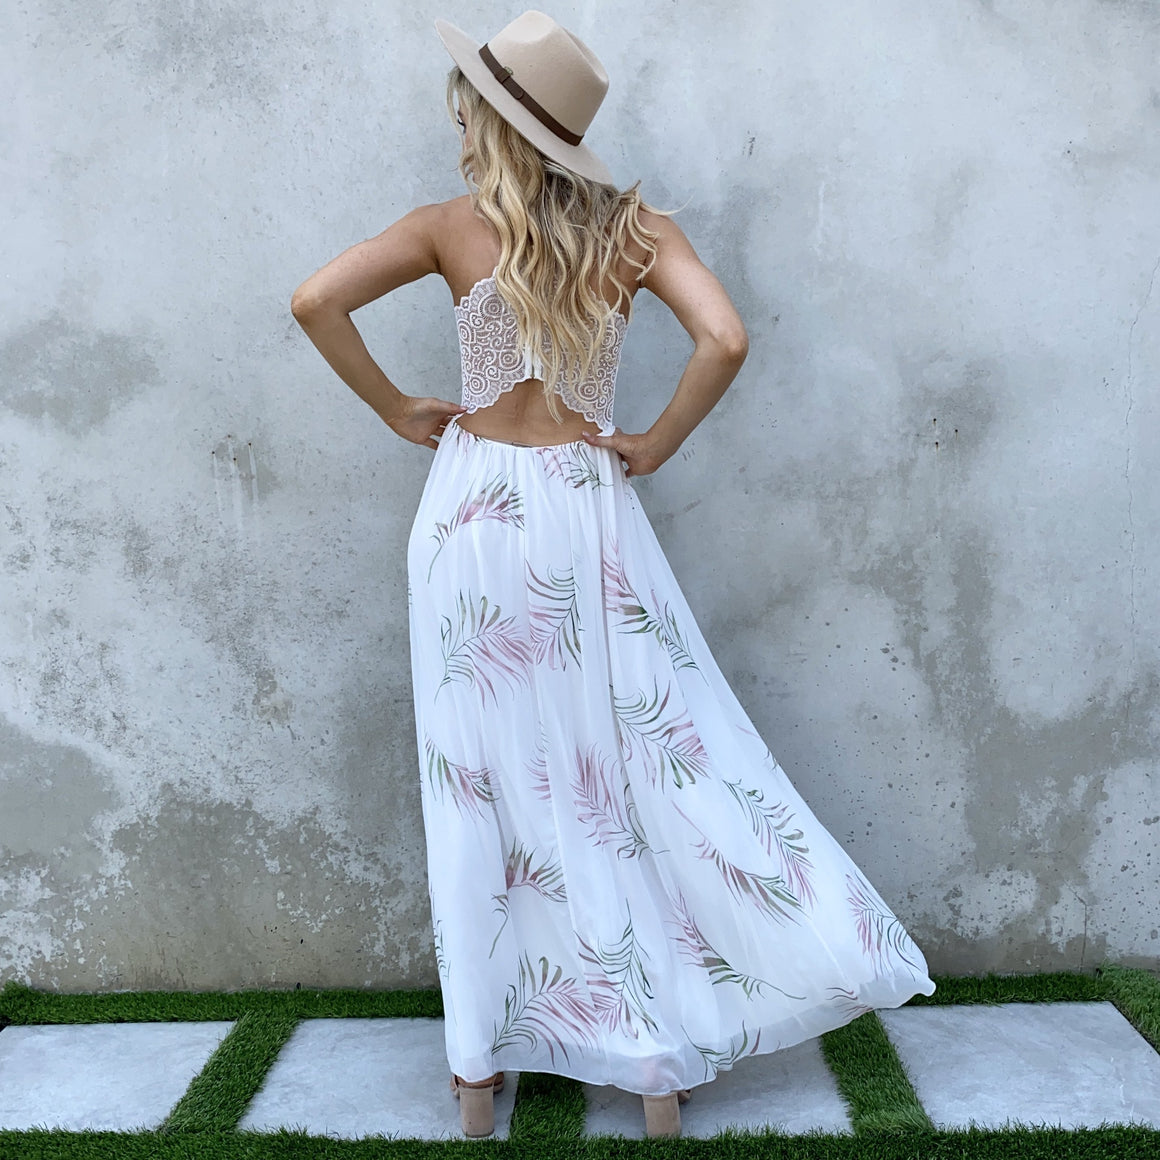 Romantic Gesture Palm Print Maxi Dress - Dainty Hooligan